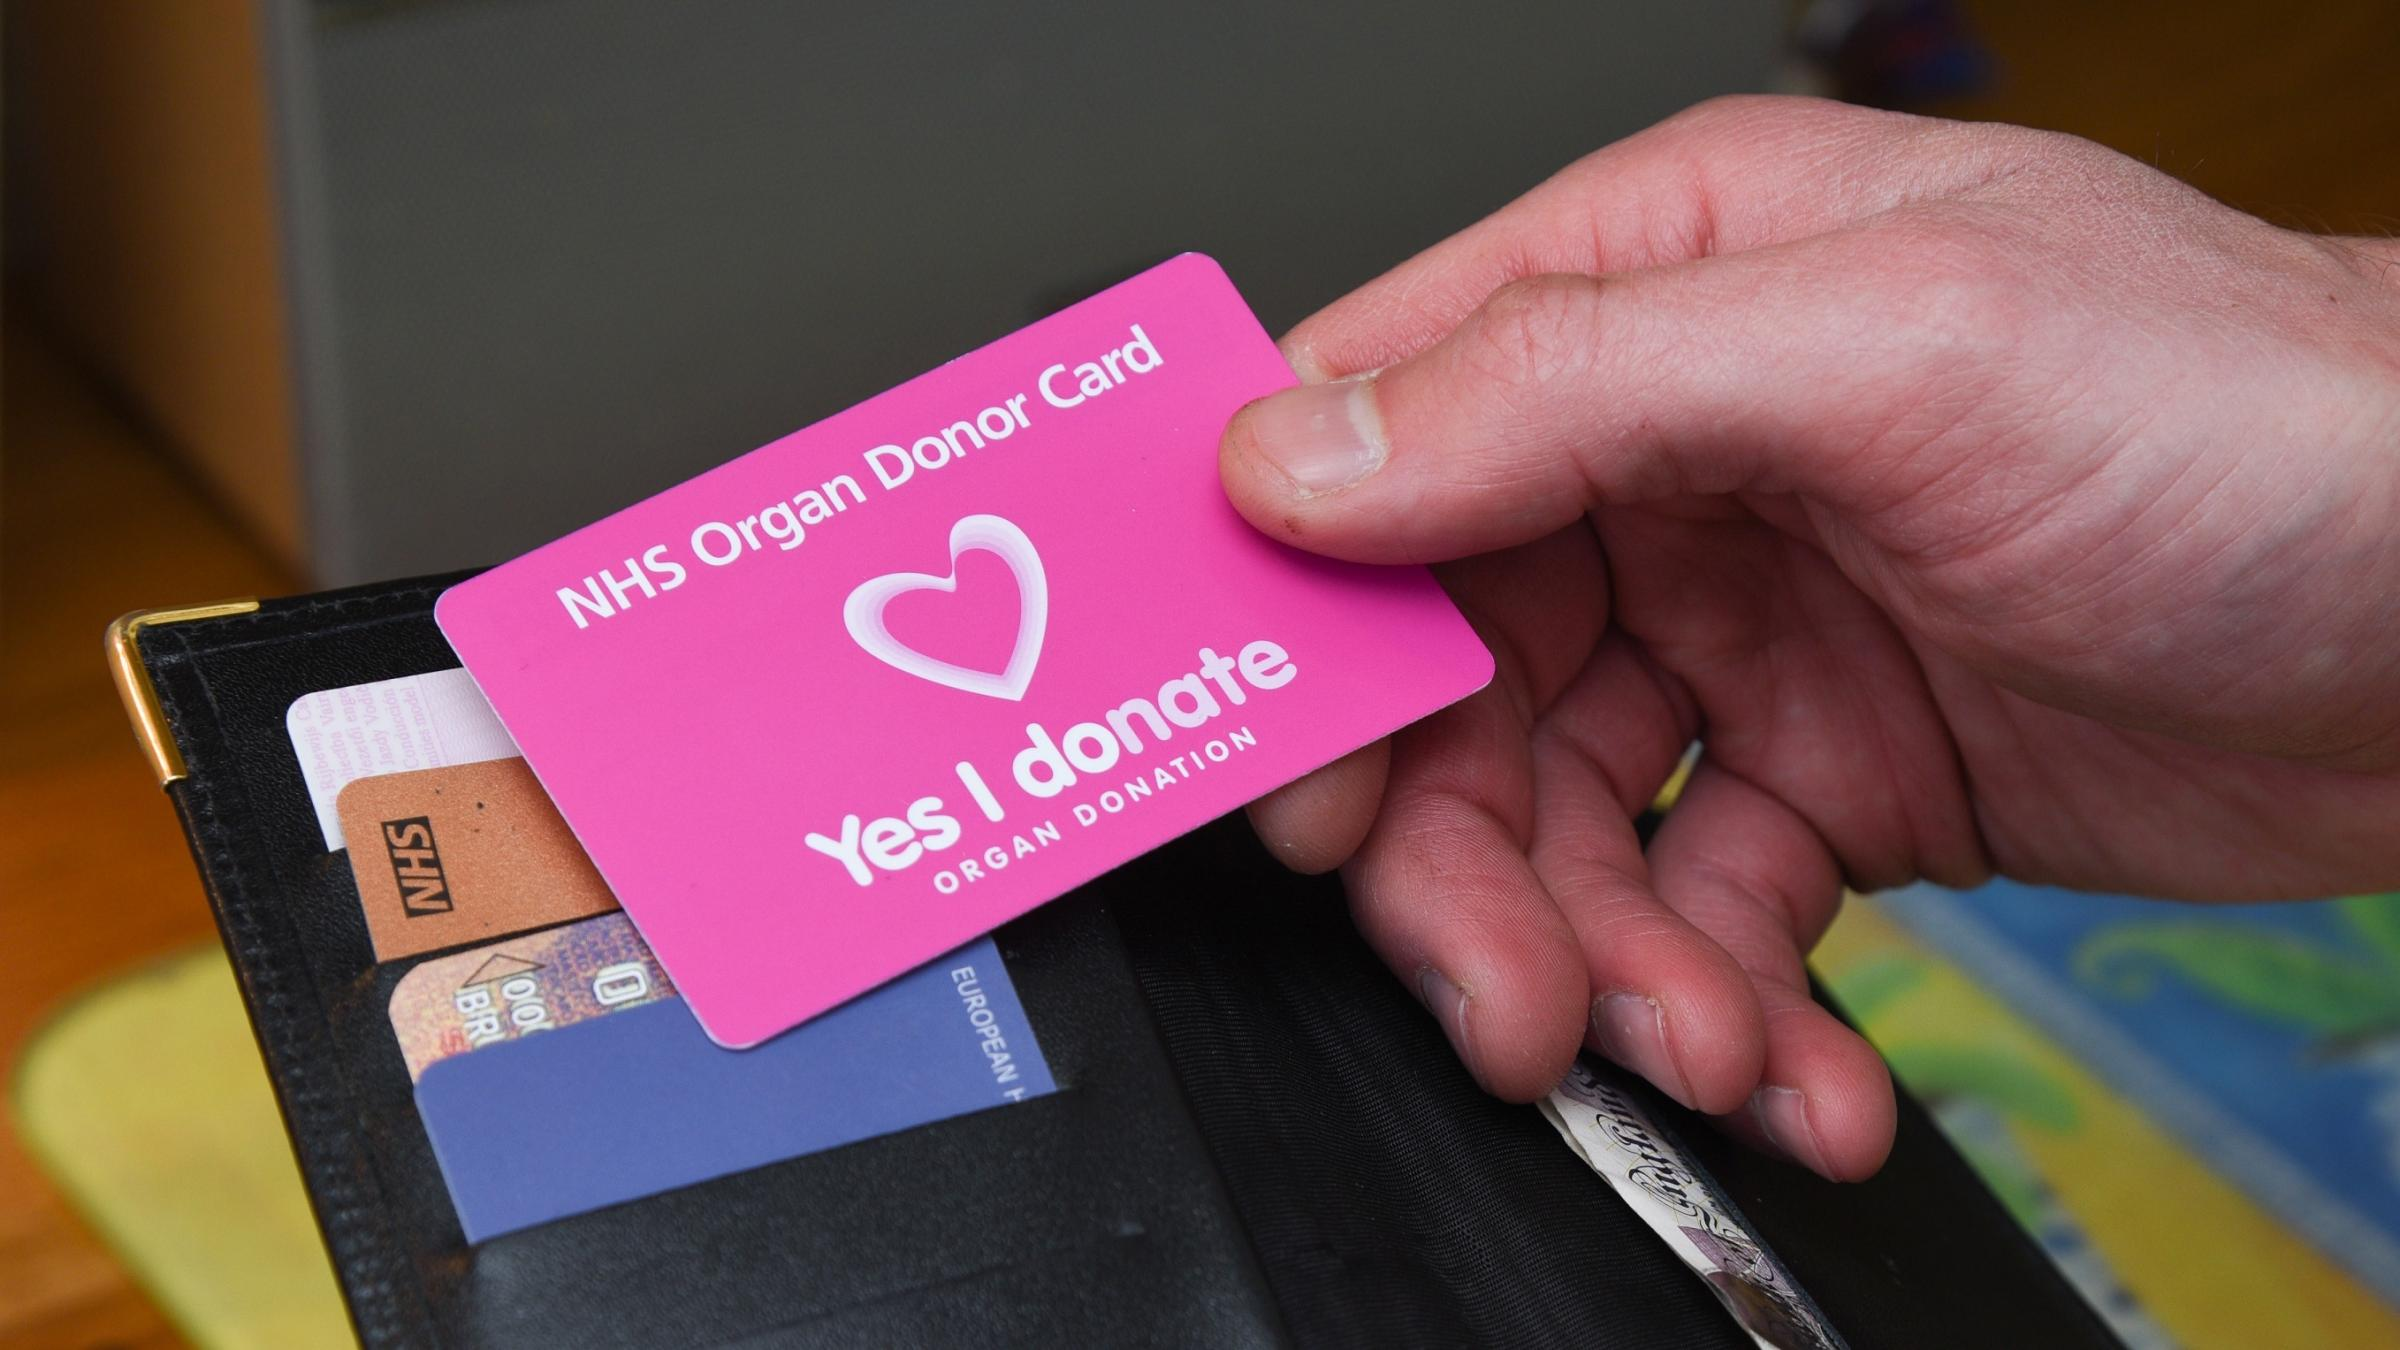 Only one in three people on organ donation register in Harborough area